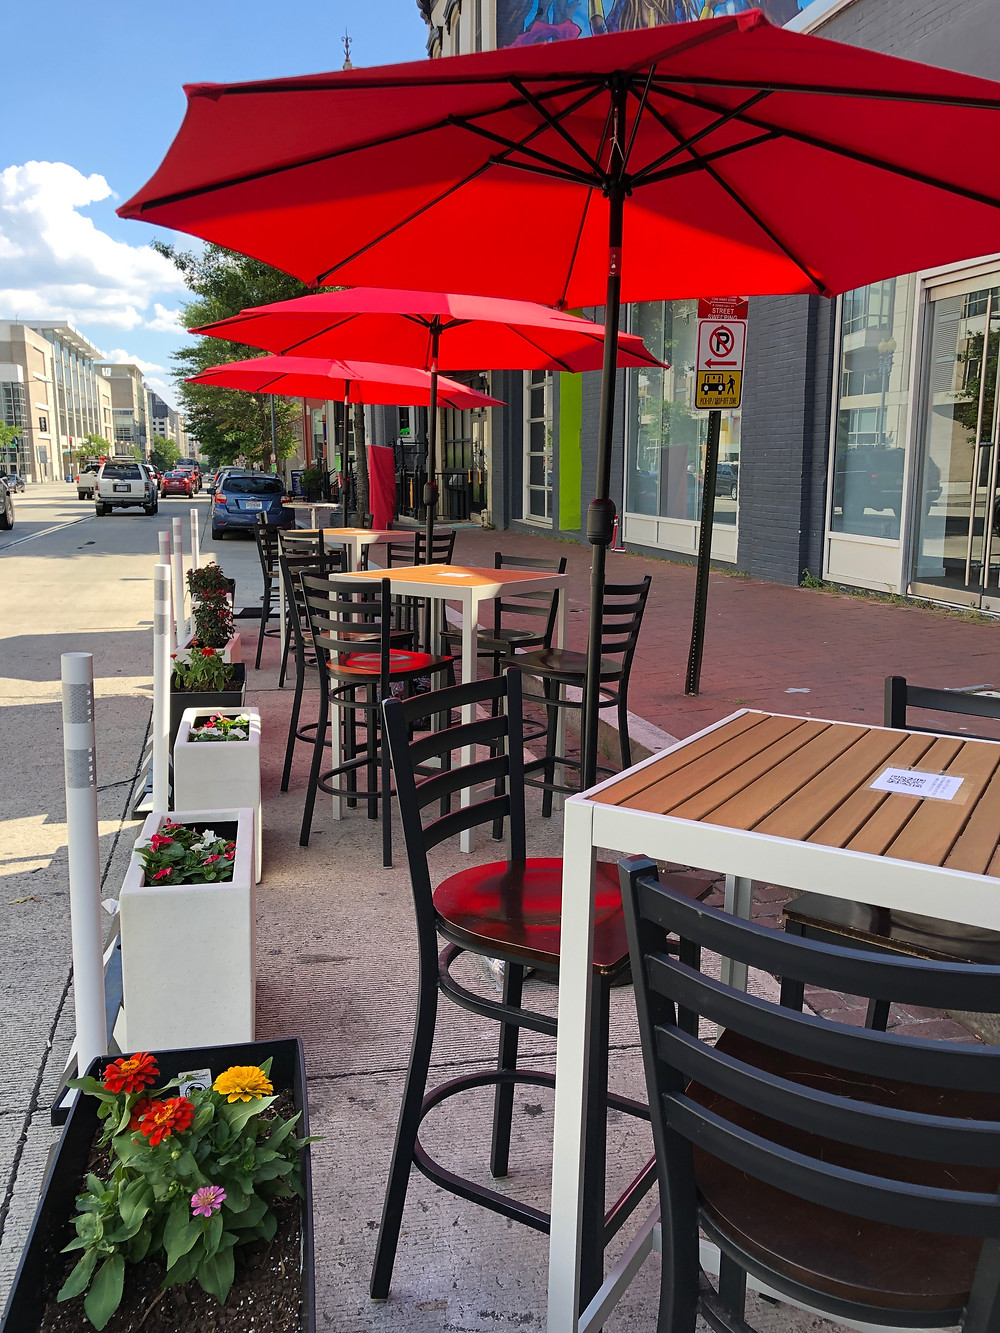 A row of patio dining high-top tables with black bar chairs line the street outside of a bar on a bright sunny day. Each table has a large bright red umbrella. White planter boxes with bright flowers create a border between the seating area and traffic.